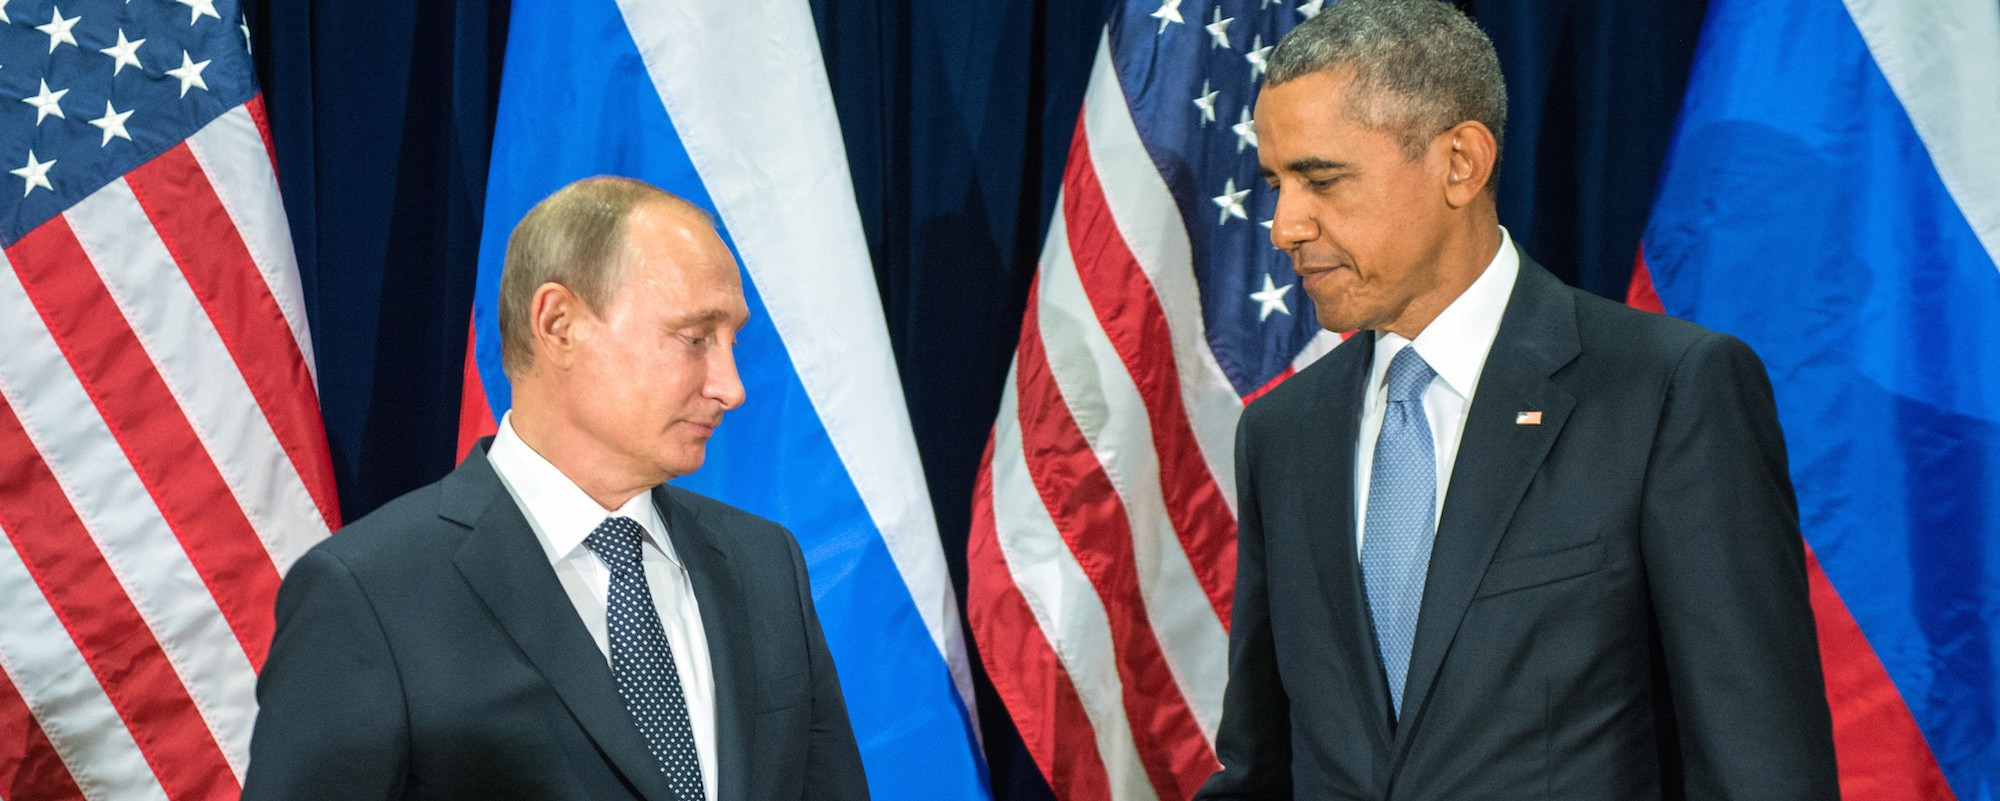 Sorry, France — the US and Russia Aren't Joining Forces Against the Islamic State Anytime Soon